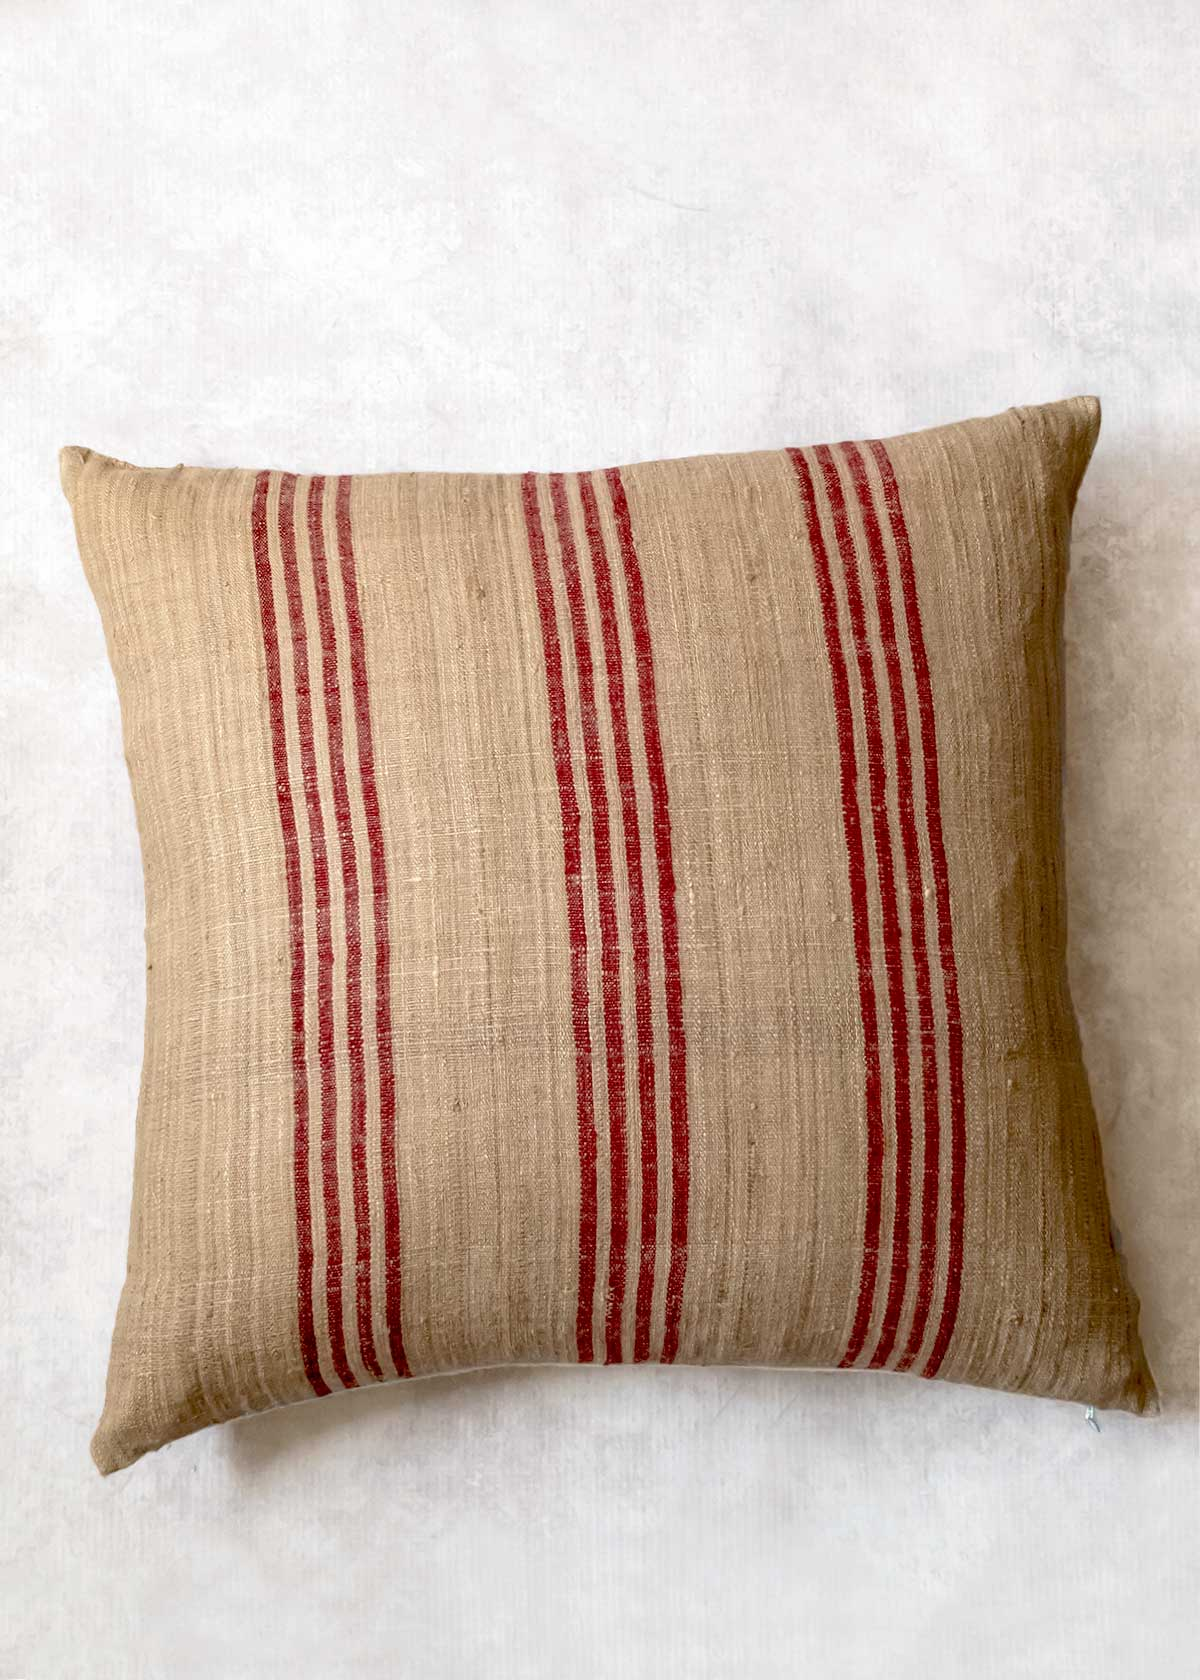 Sustainable Threads Raw Silk Pillow